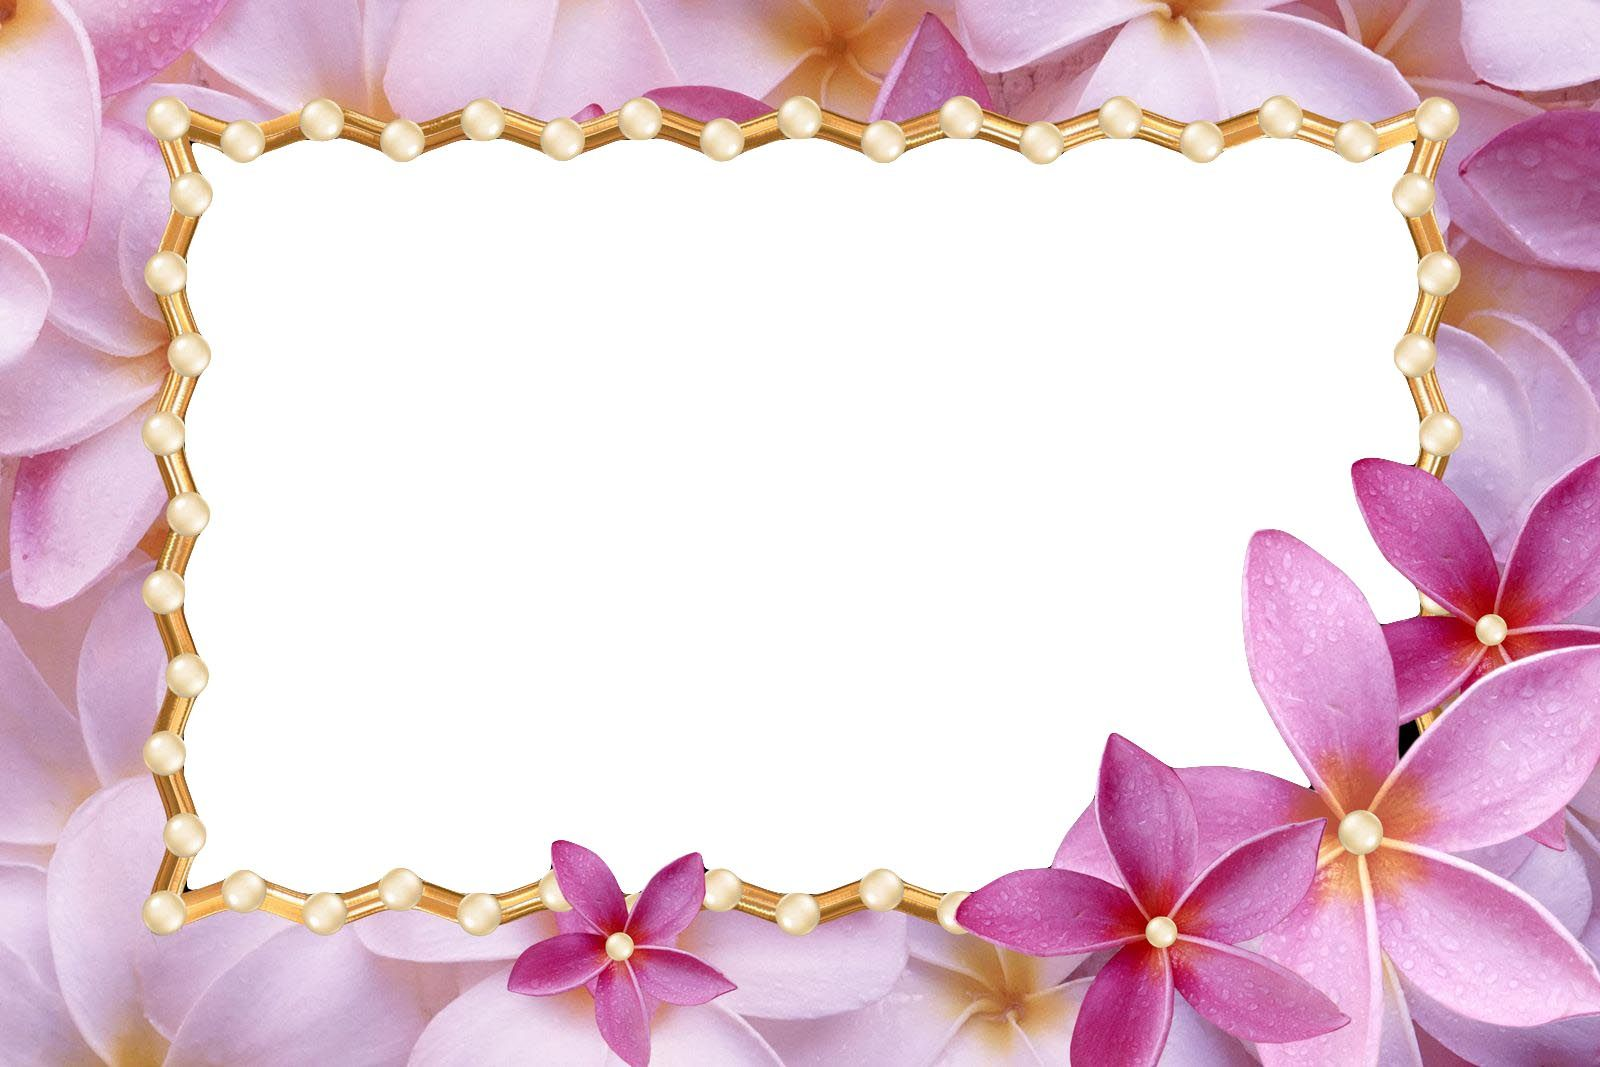 Frame Love Background Png | Nakanak org